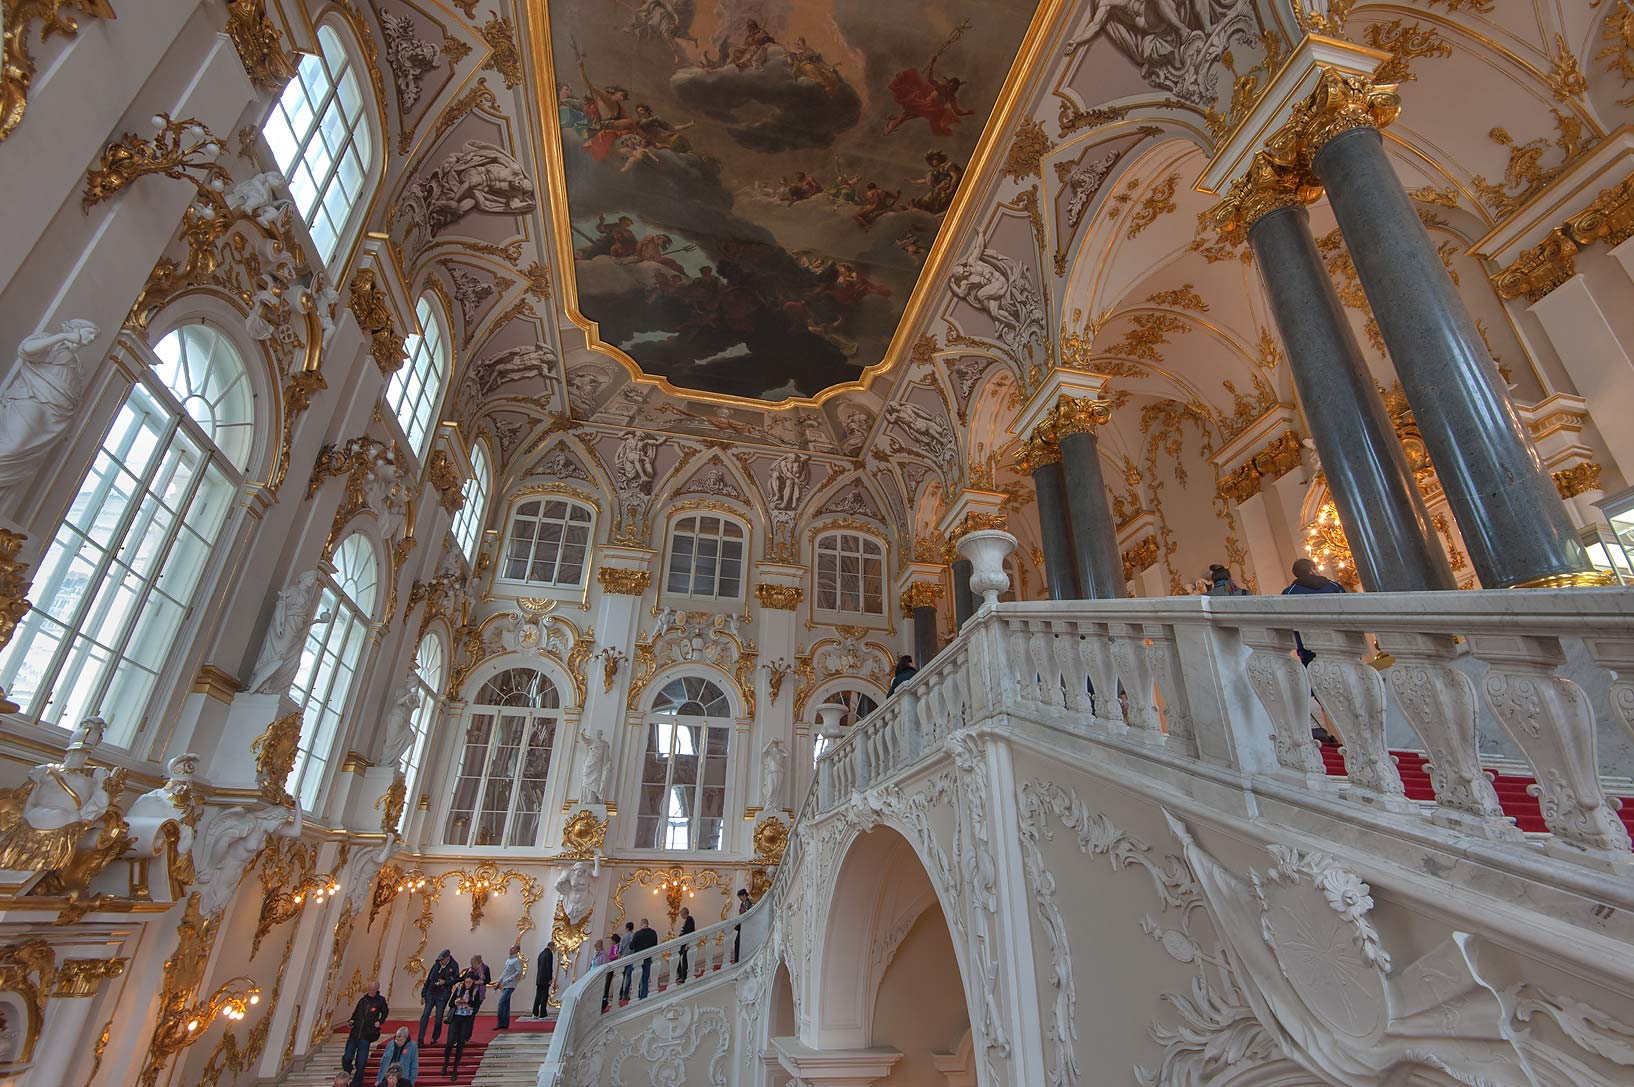 Grand staircase in Hermitage Museum. St.Petersburg, Russia